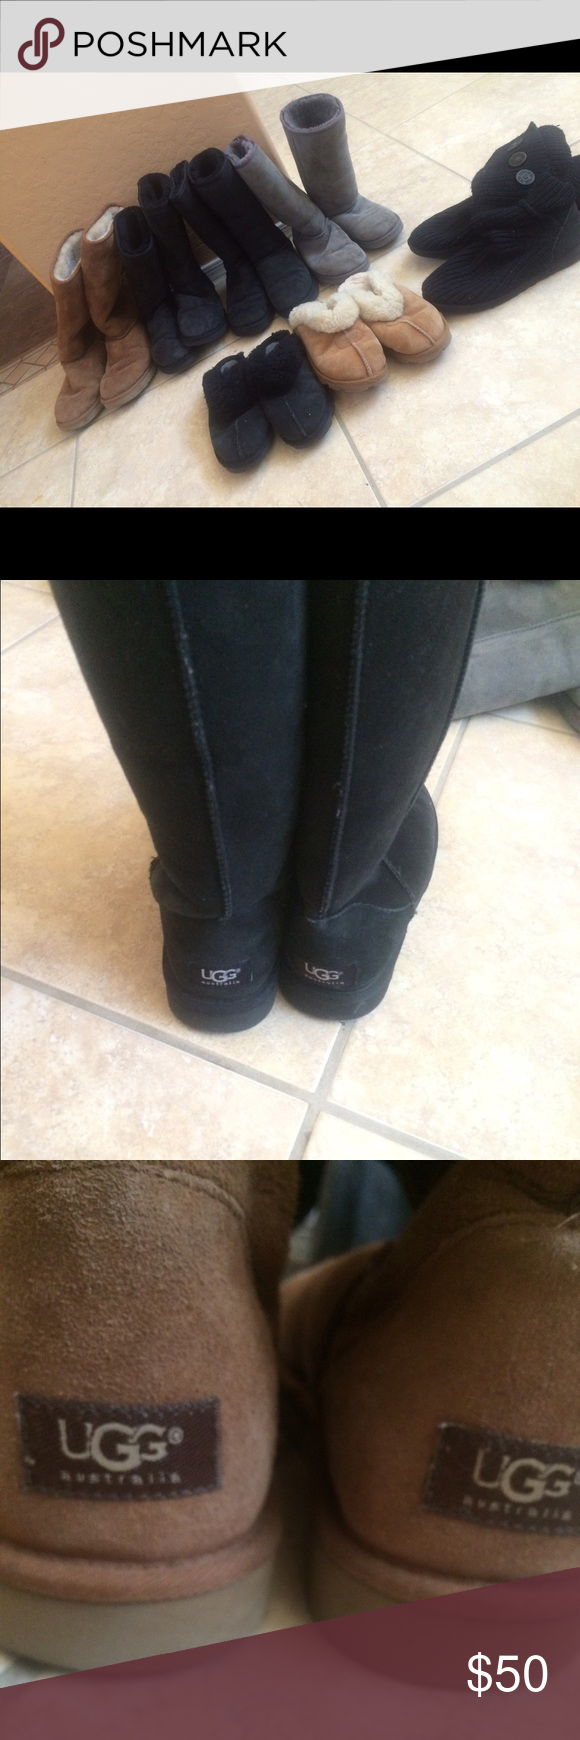 BIG VARIETY OF UGG BOOTS accepting offers My mom, sisters, and I have a large collection of ugg boots however we are new vegans and unable to wear these shoes, instead of throwing them away, it's more ethical to give them to other people! They vary in sizes I have 9s,10s,8s,7s and more! Let me know your size and I'll tell you what's available! In the picture the knit black ones are9, the tall brown are 10s, the grey ones are 8s and the black brand new ones are 7s! Only worn a few times…